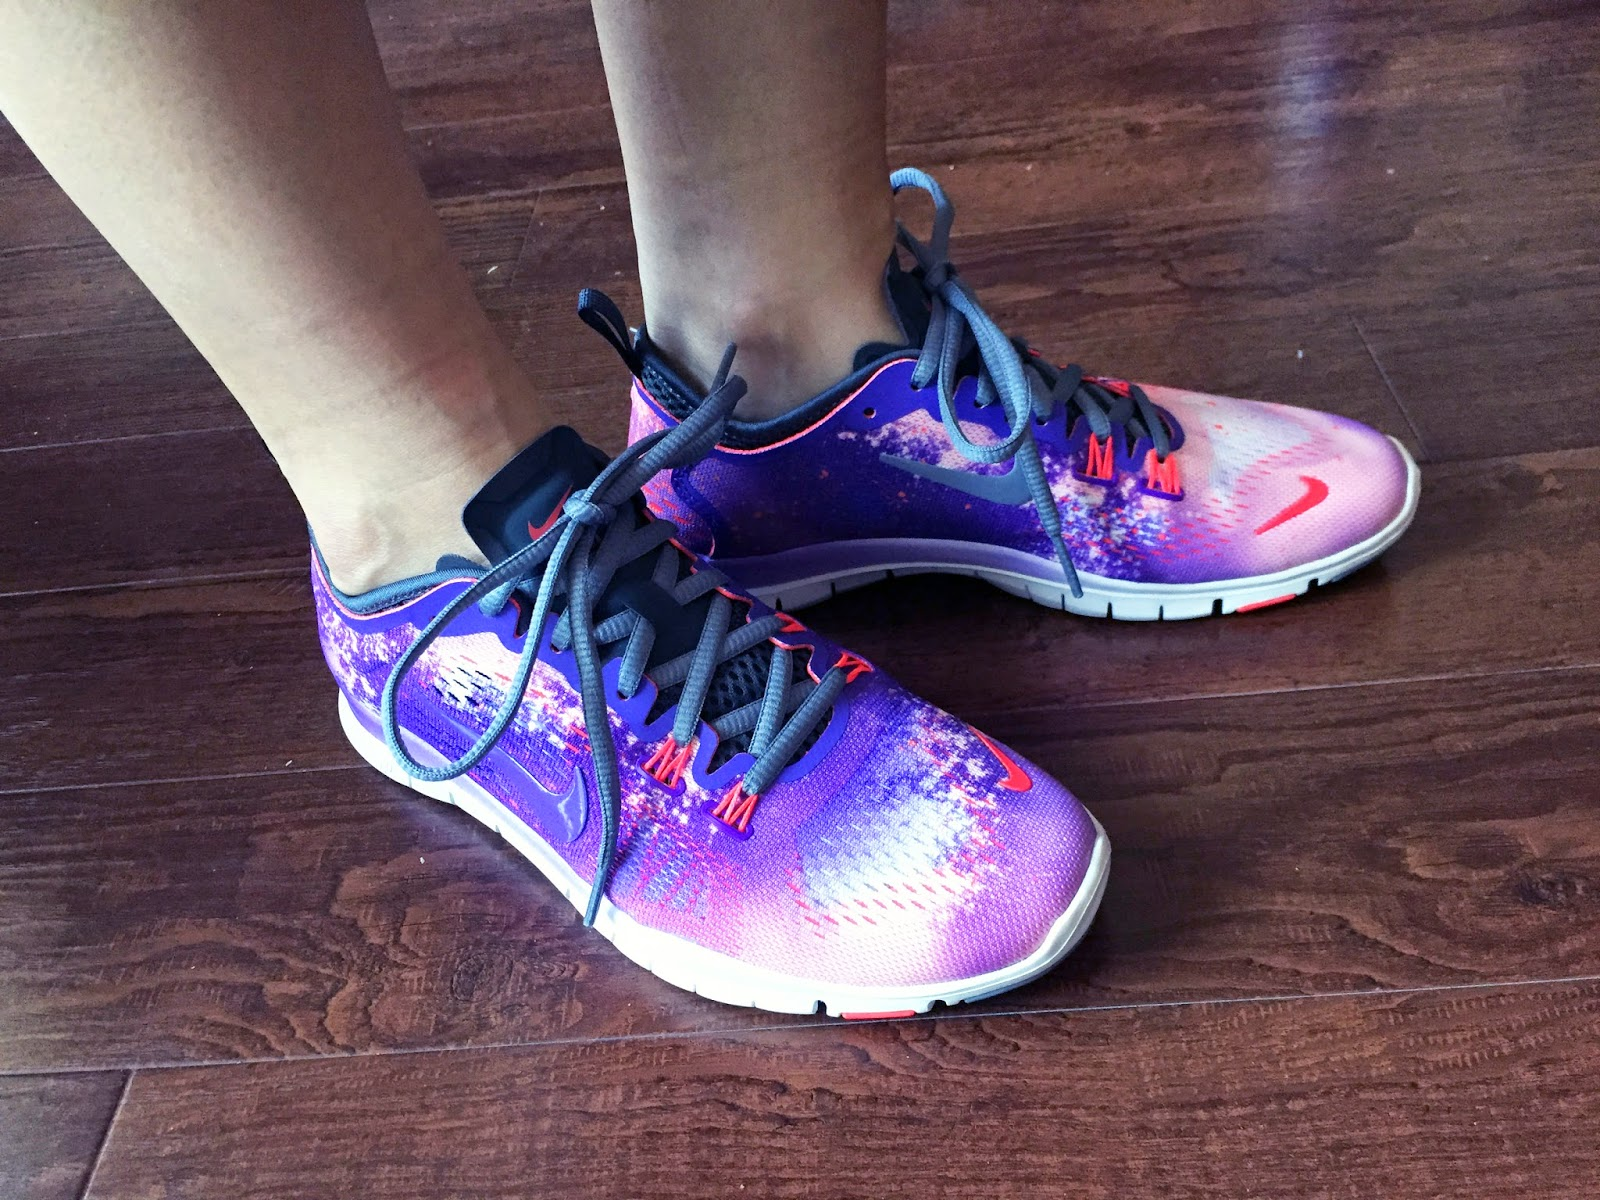 d2254abe7a0d My Superficial Endeavors  Nike Free 5.0 TR Fit 4 Shoes in Purple Venom!